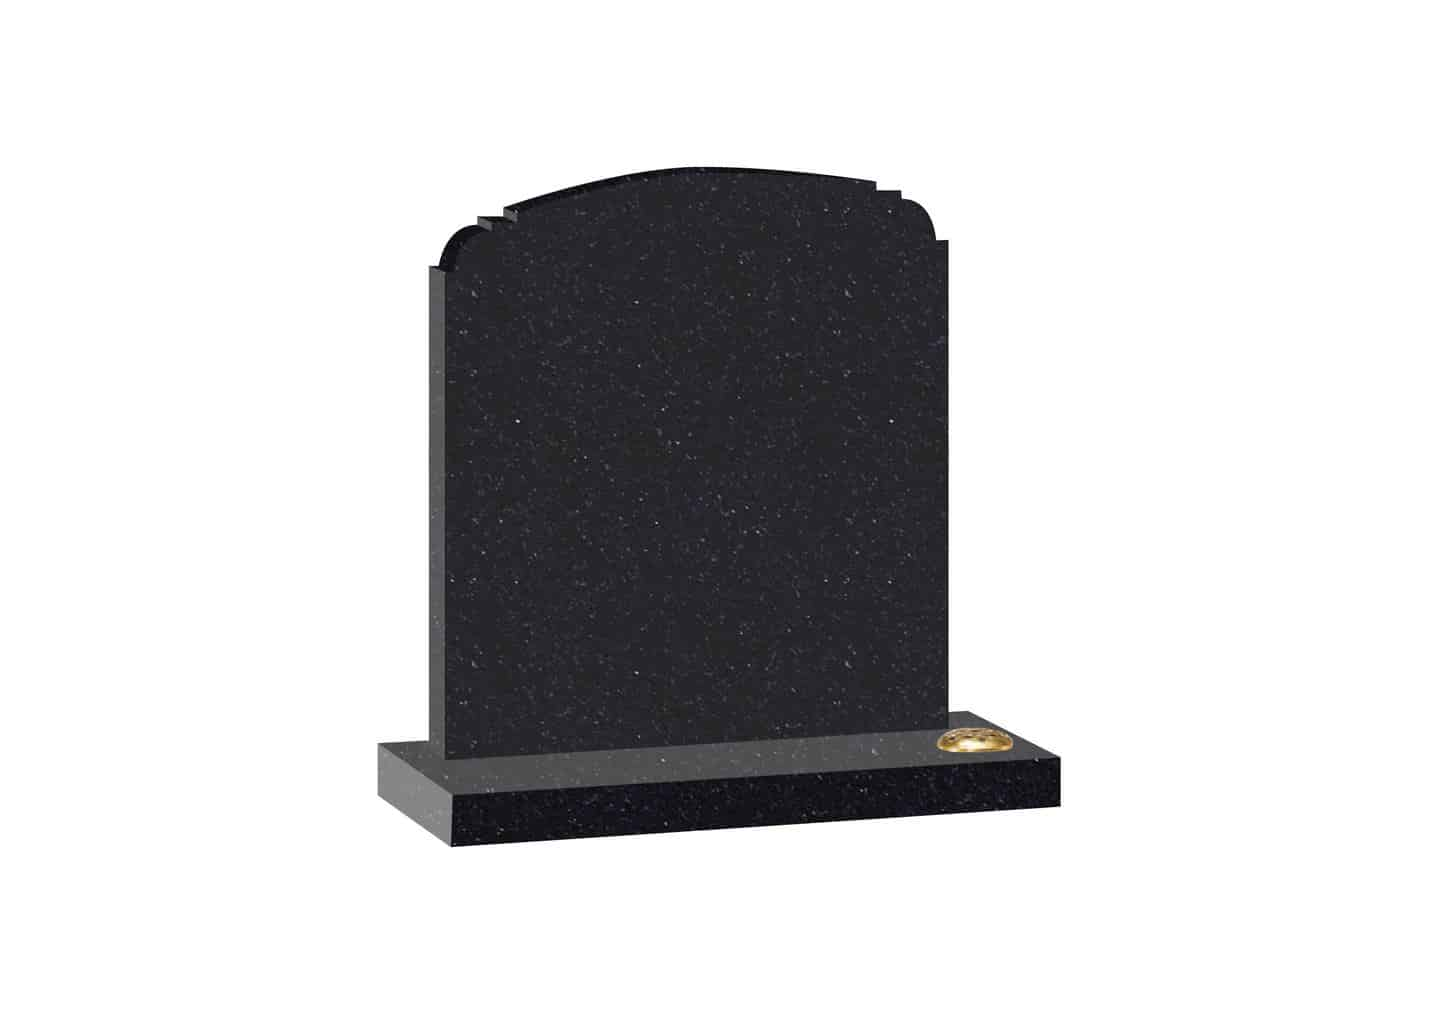 Black Granite headstone with shaped top and single flower container.